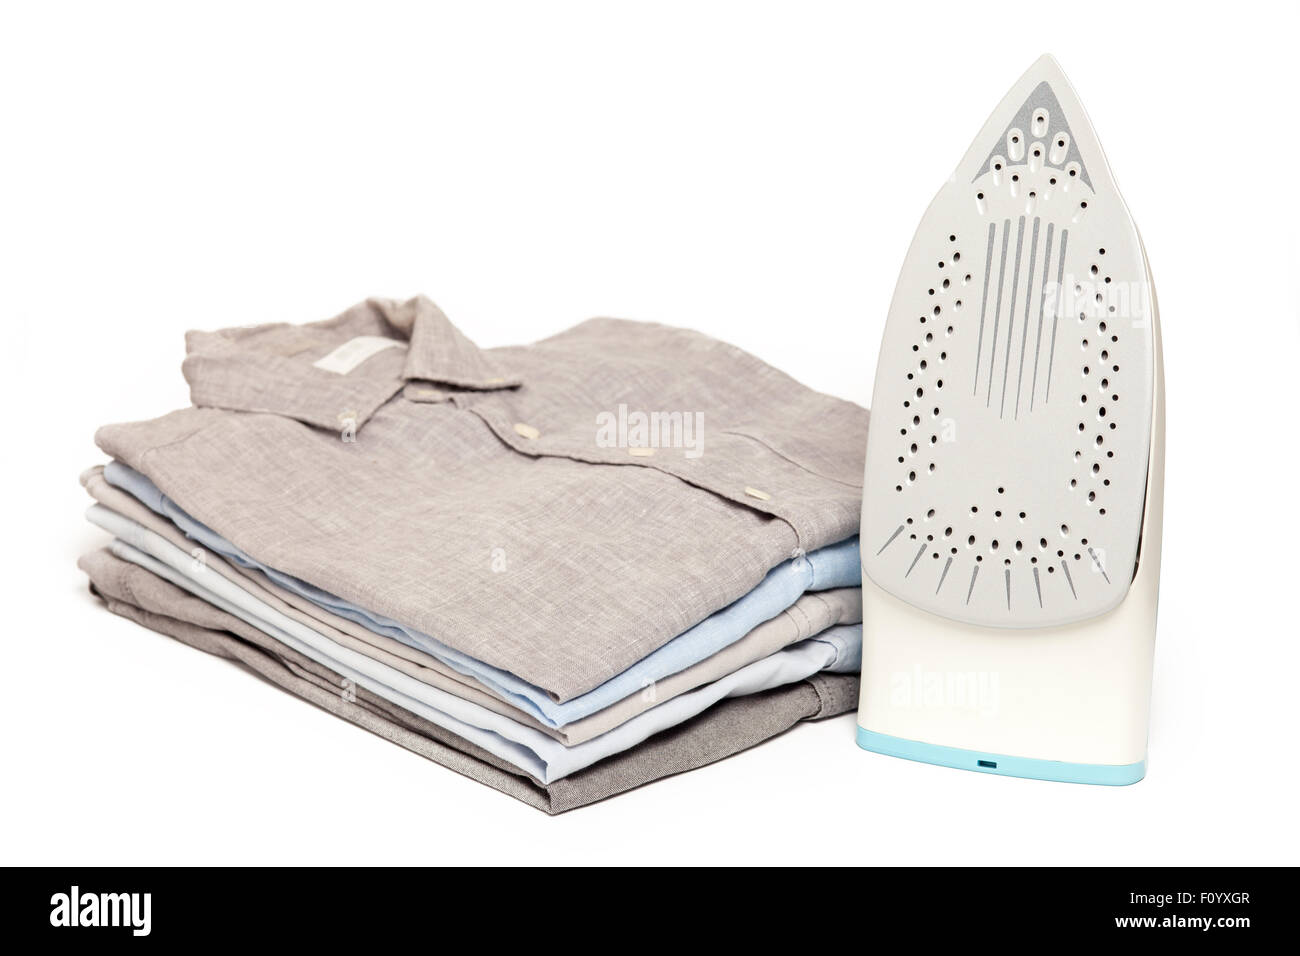 ironing housework ironed folded shirts clean concept still life garment apparel cloth indoors white background - Stock Image